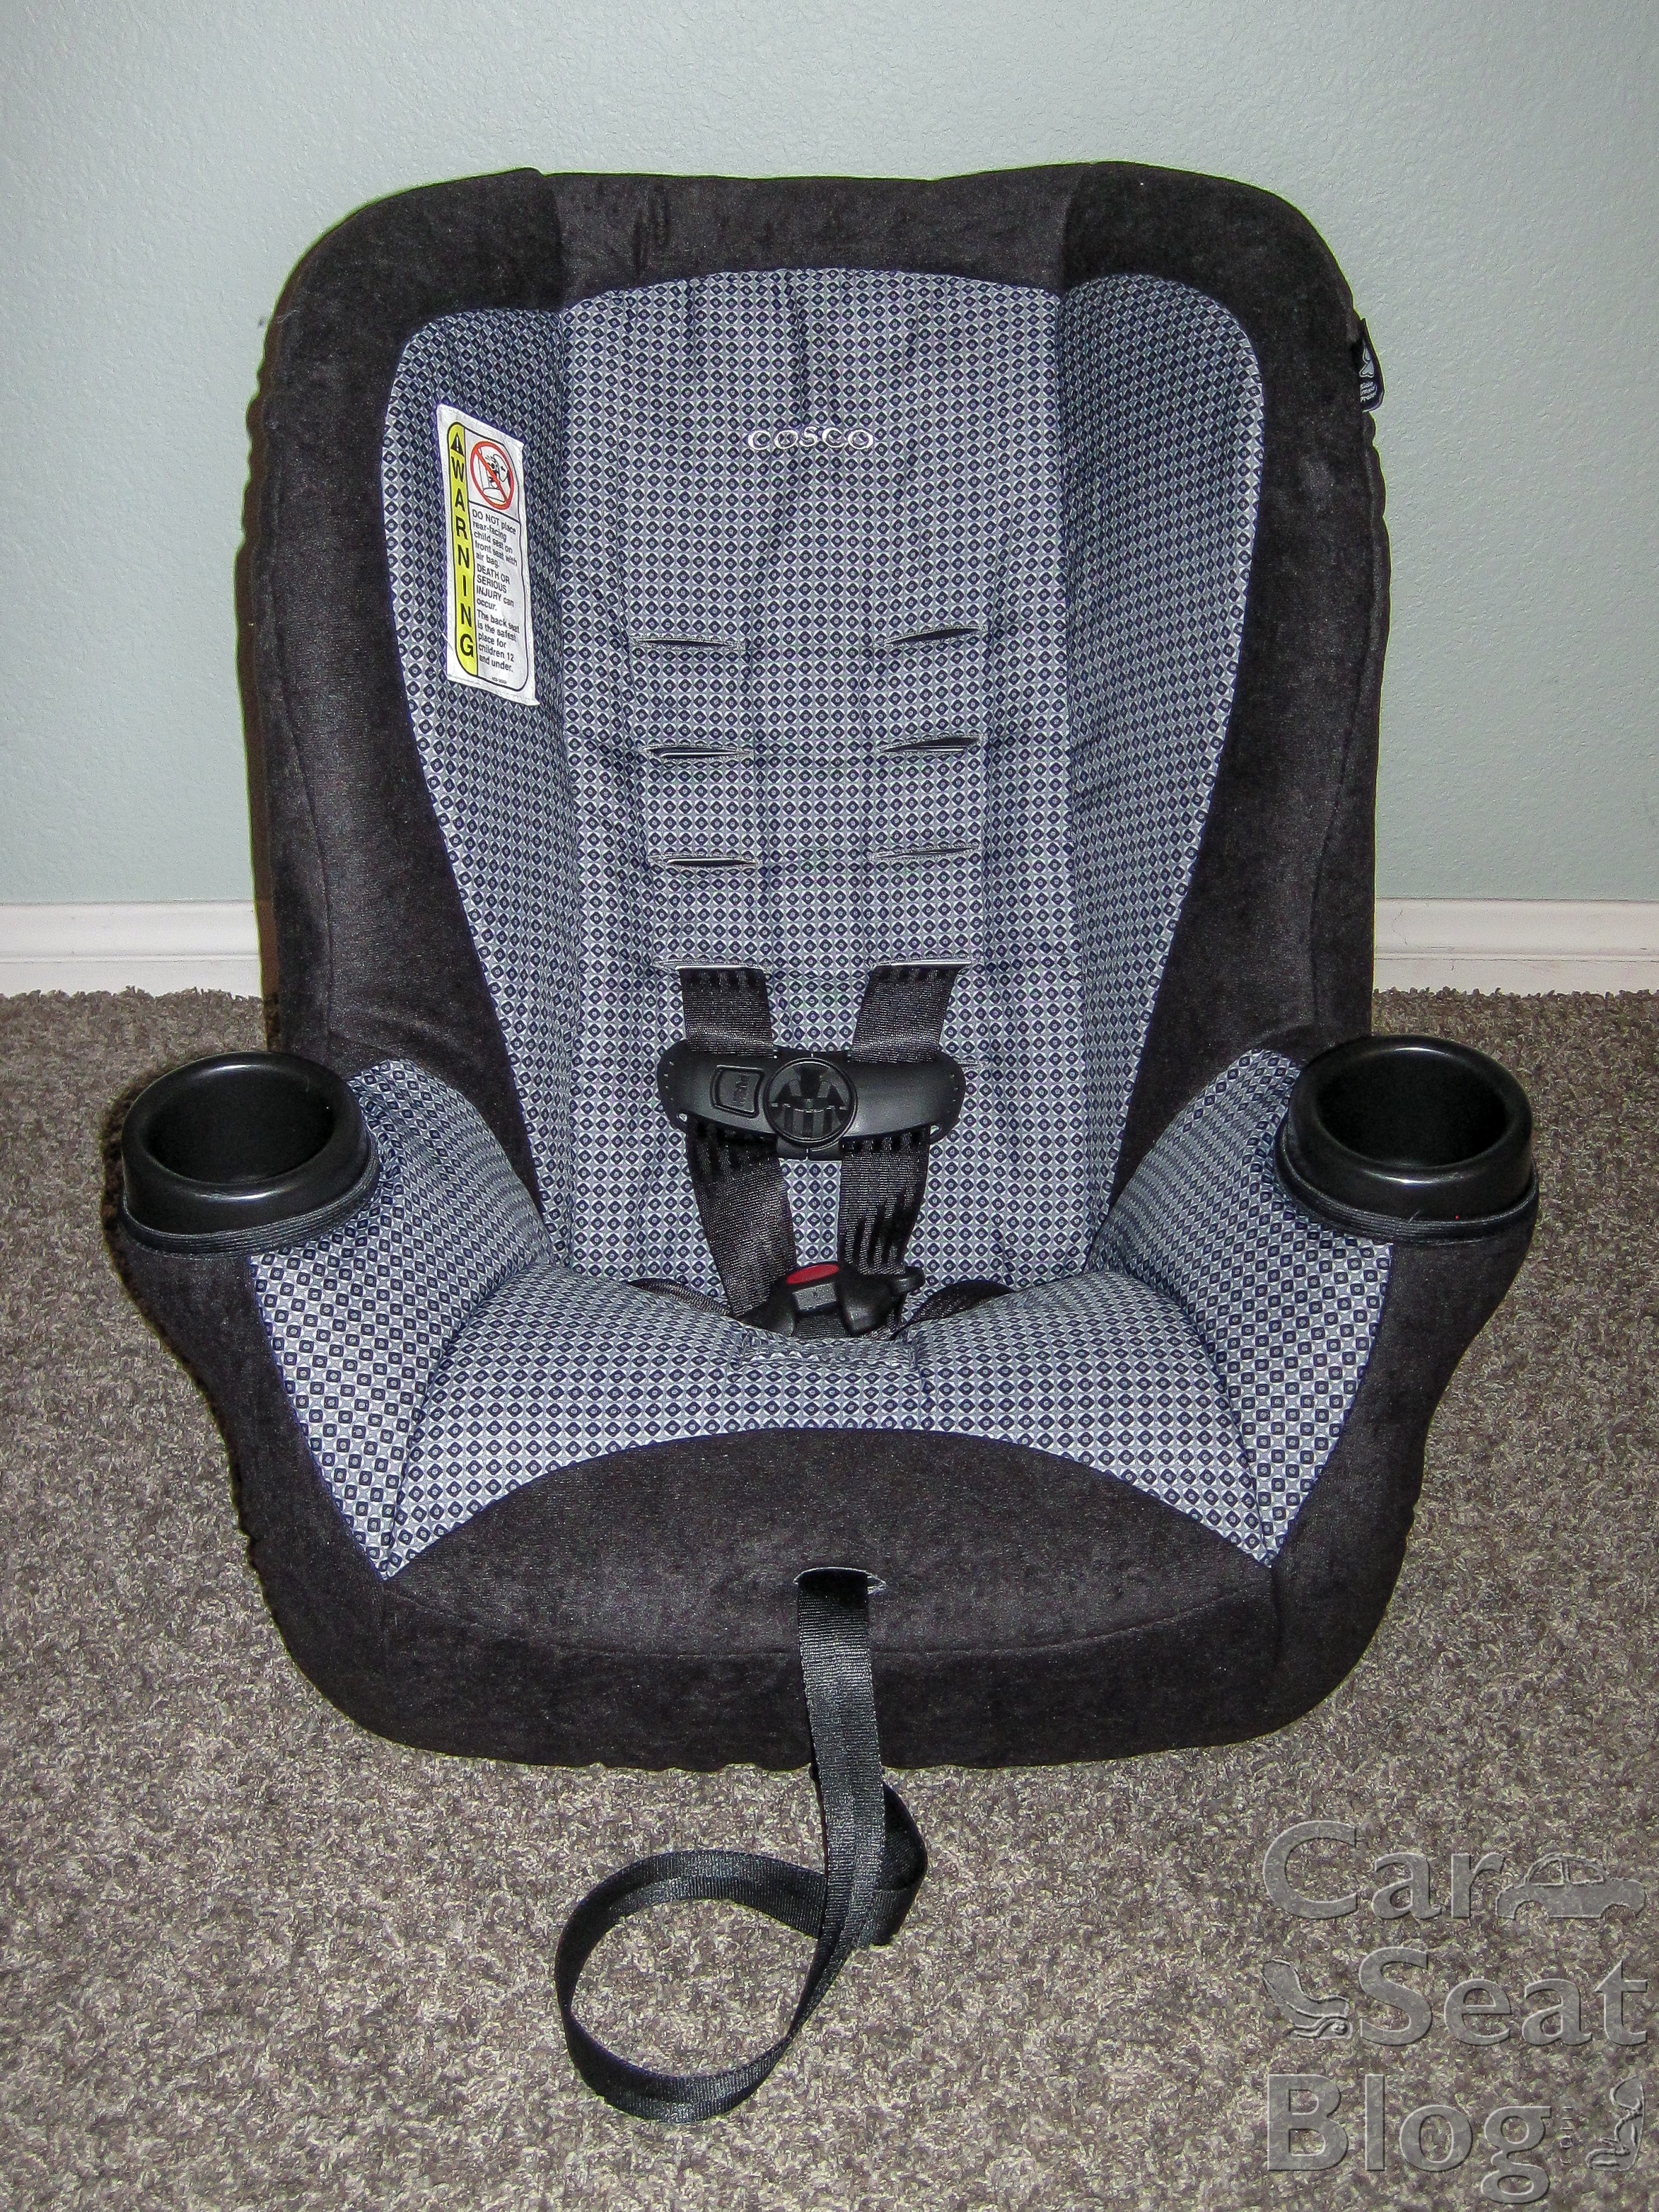 car seat desk chair conversion unusual outdoor chairs carseatblog the most trusted source for reviews